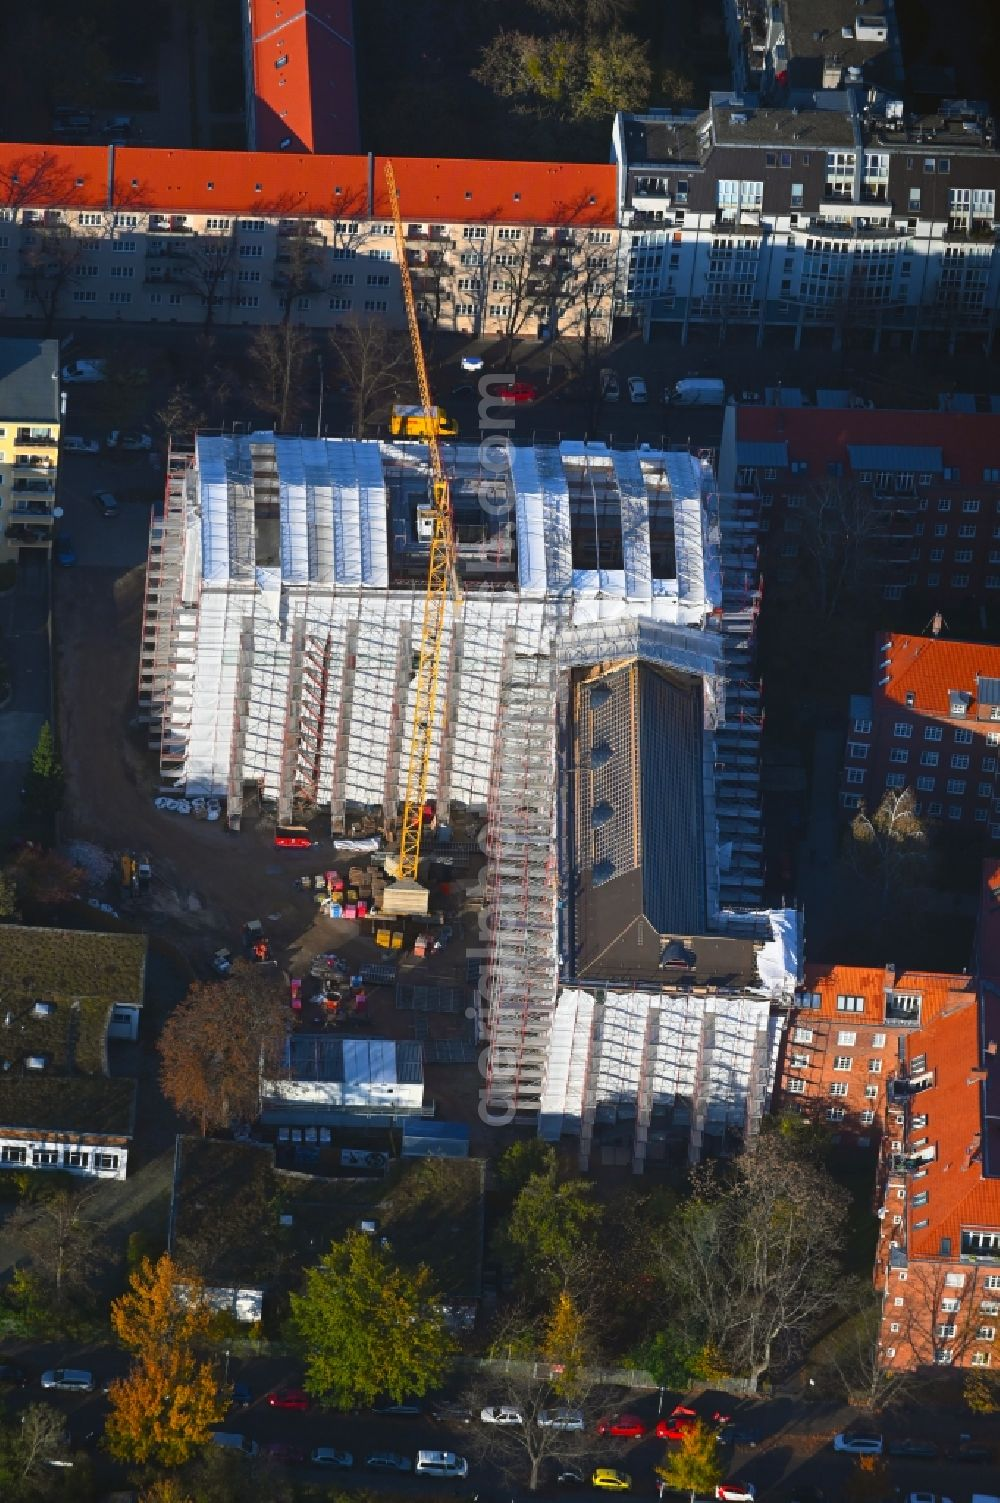 Berlin from above - New construction site of the school building Luise-Henriette-Gymnasium on Germaniastrasse - Goetzstrasse in the district Tempelhof in Berlin, Germany